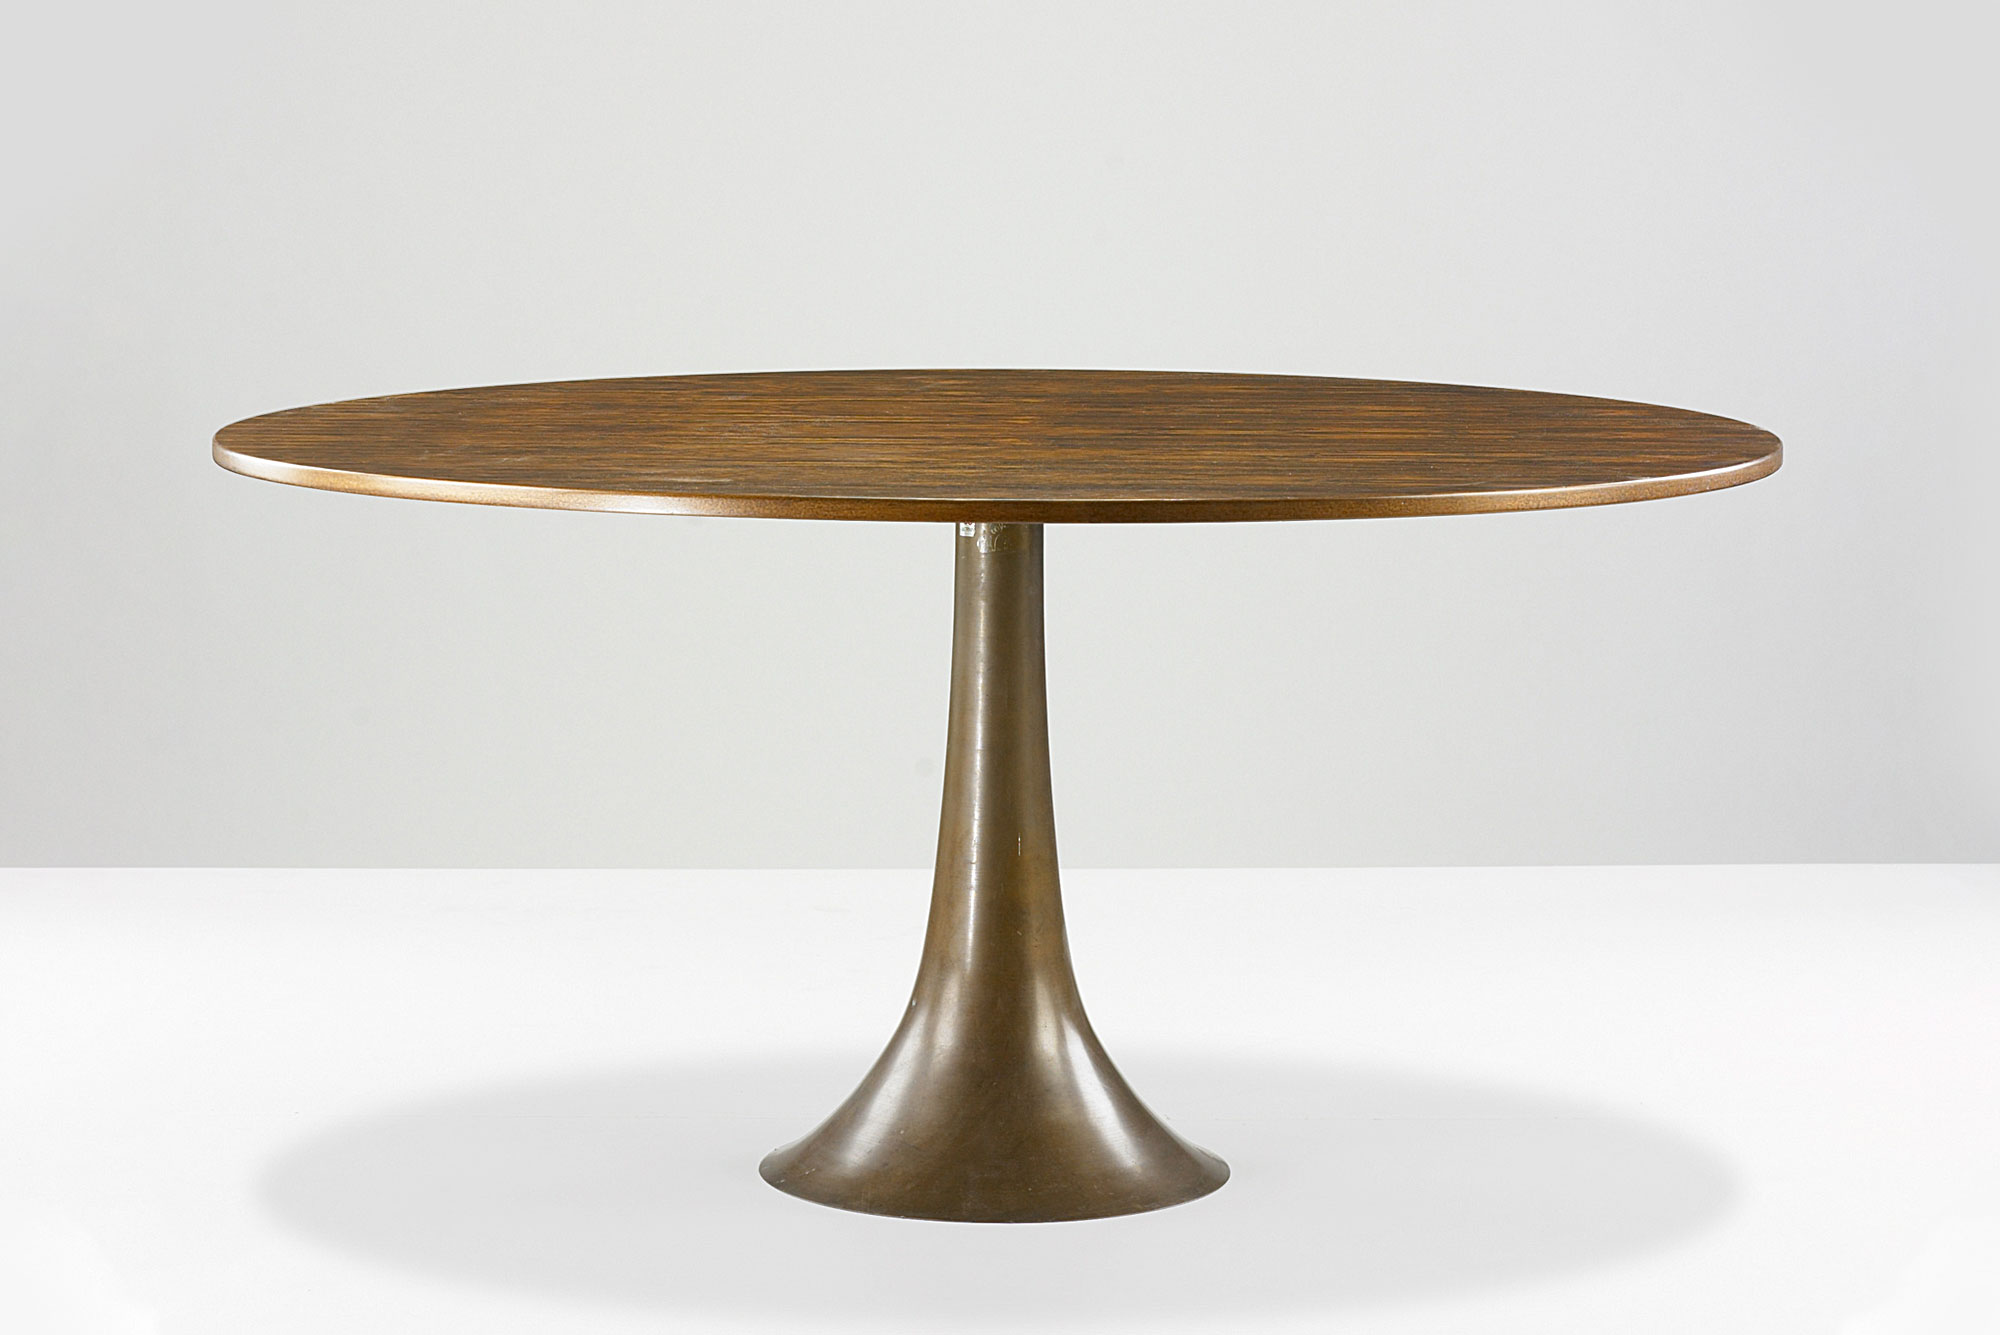 Dining table with wooden top